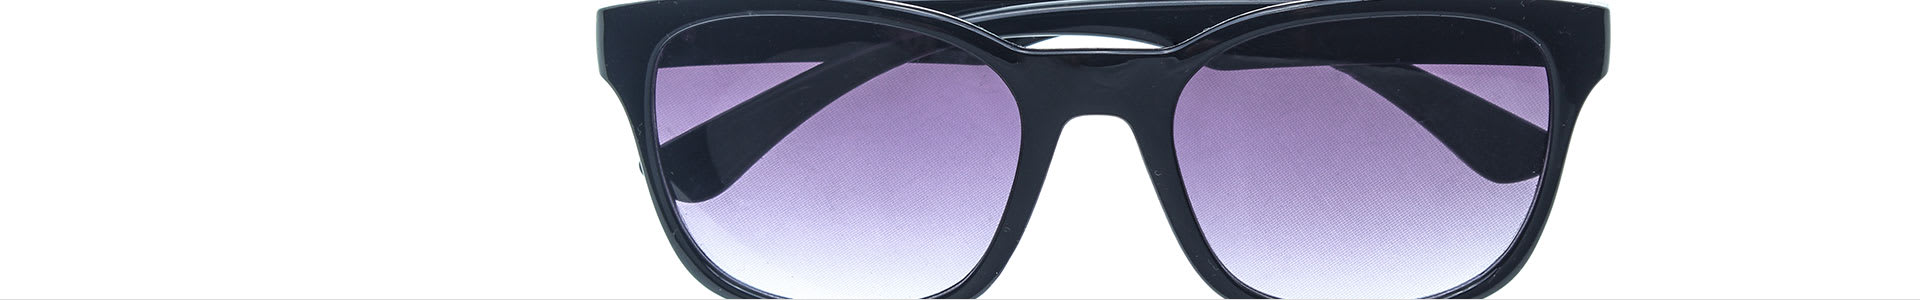 Gradient Lens Tints for Sunglasses